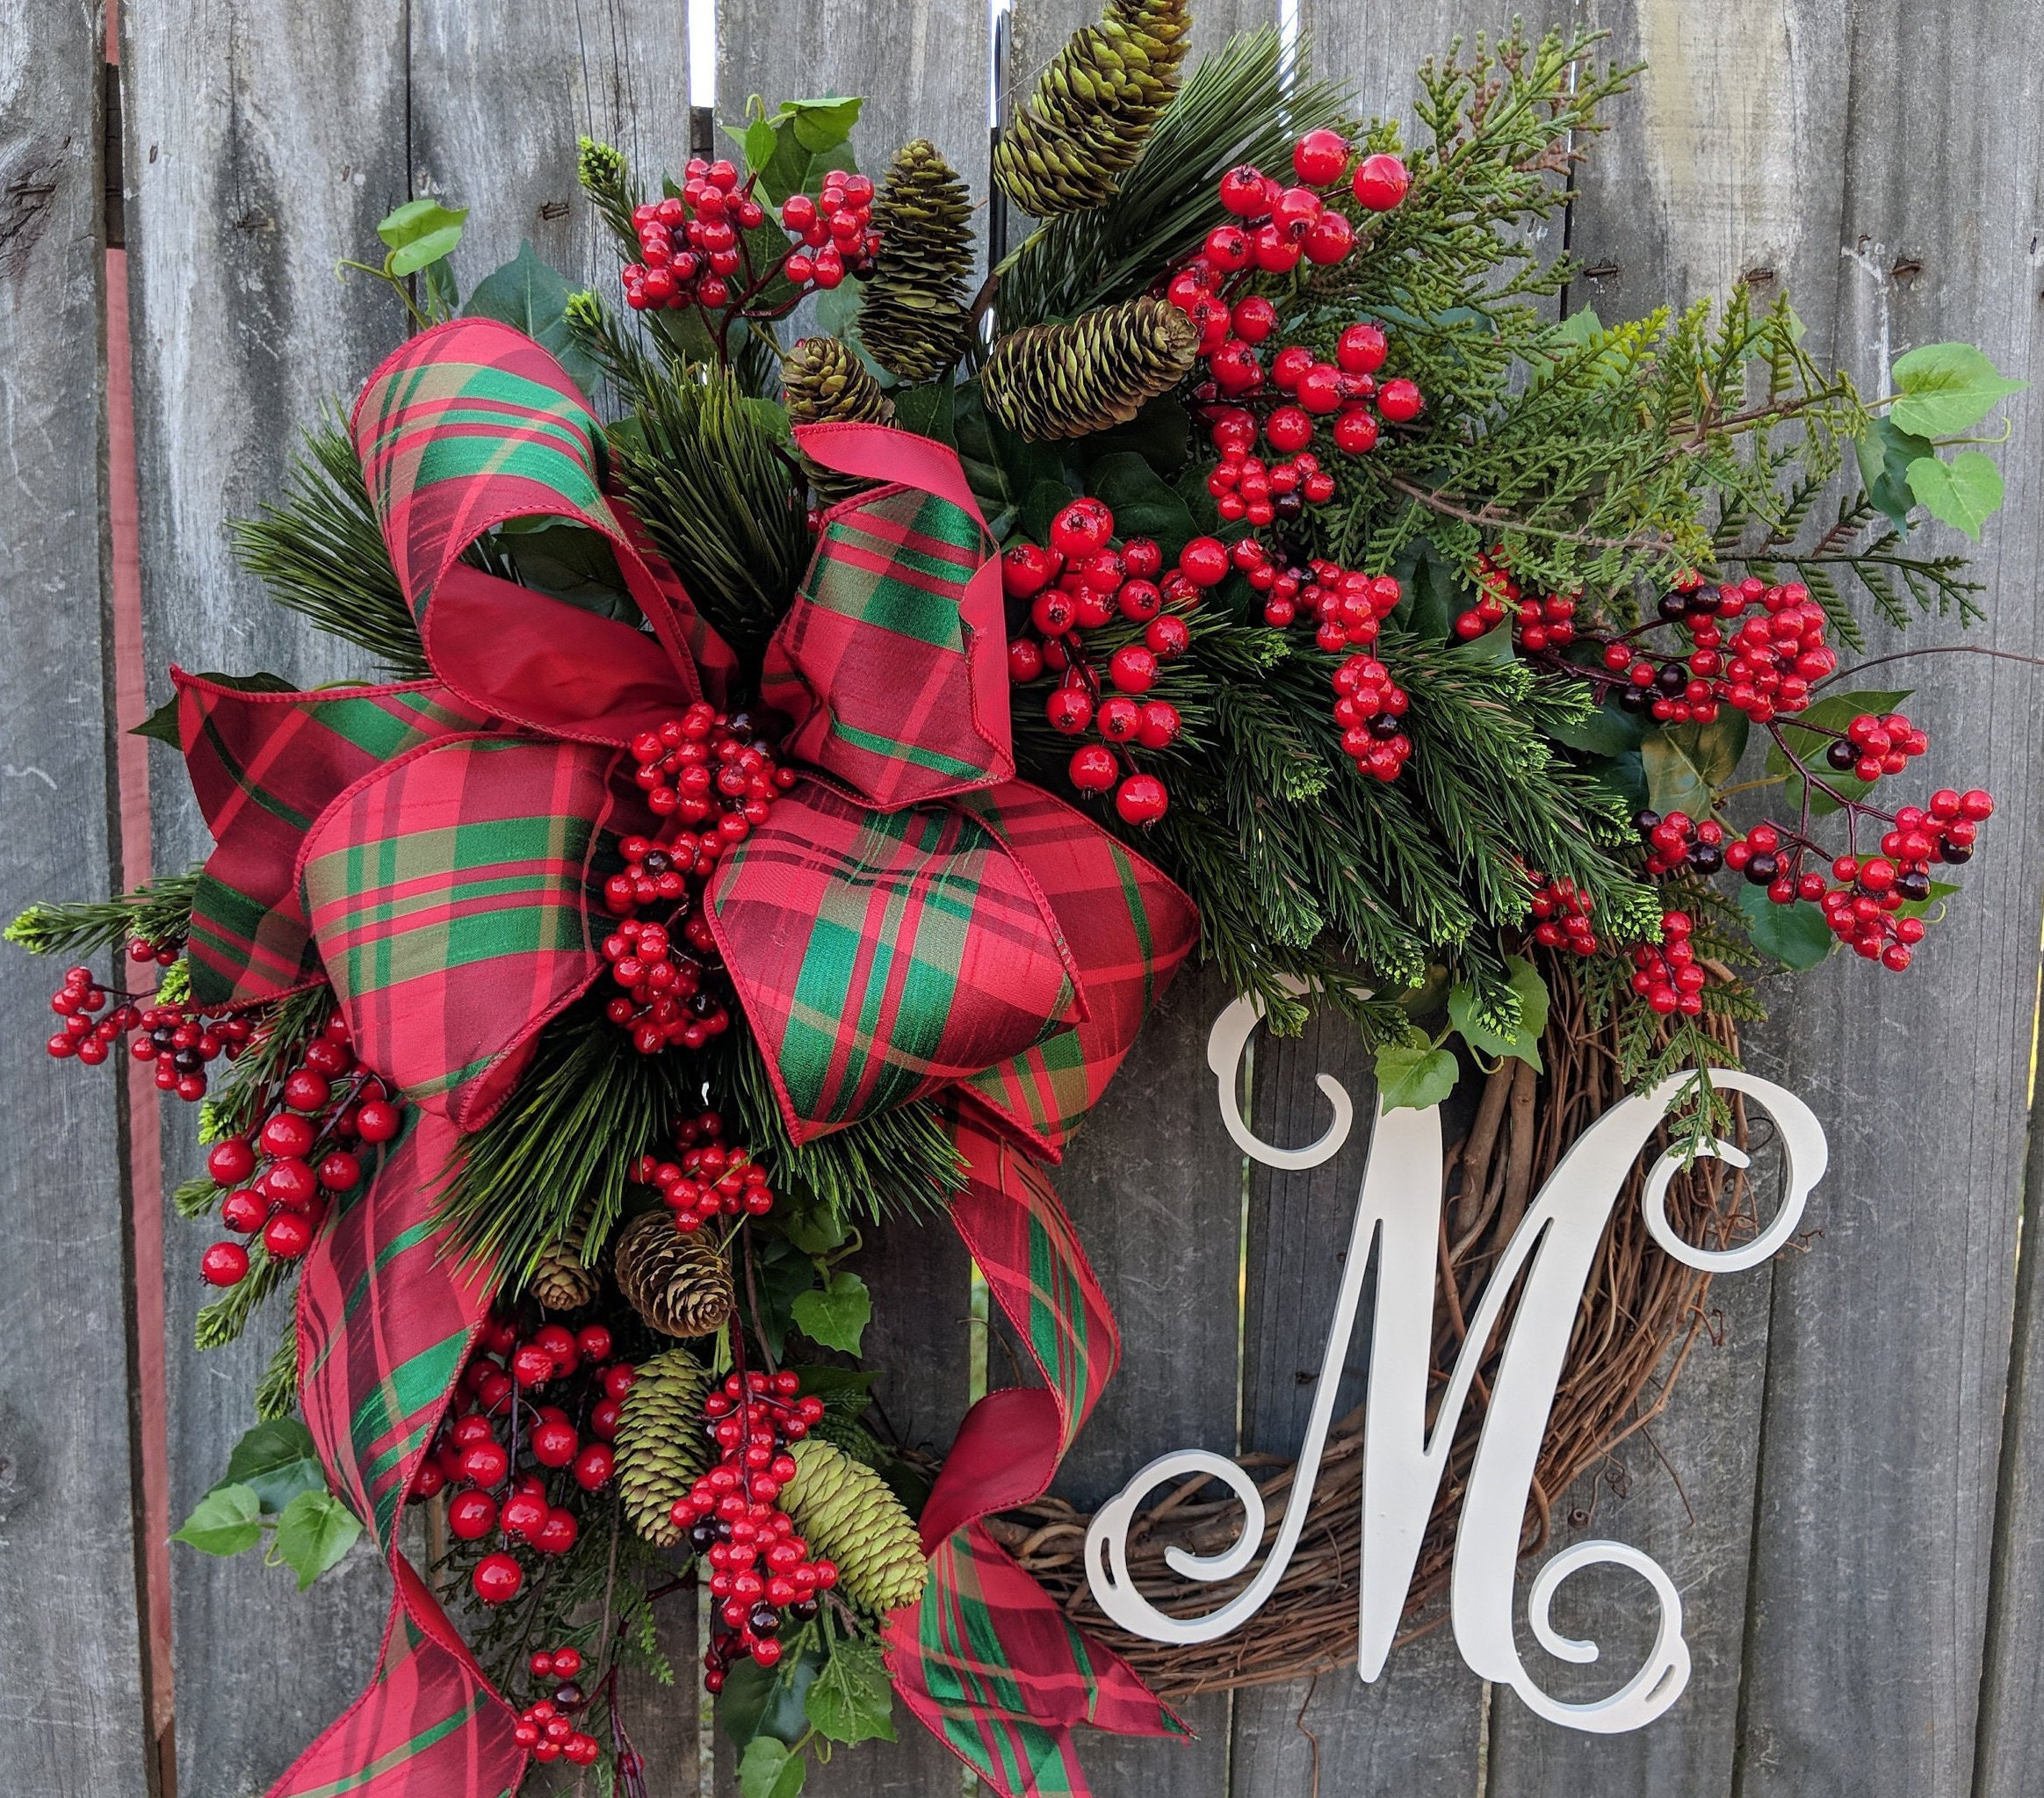 Christmas Wreath Holiday Decor Plaid Elegance Berries And Pinewreath With Letter Initial Monogram Wreath Christmas Decor